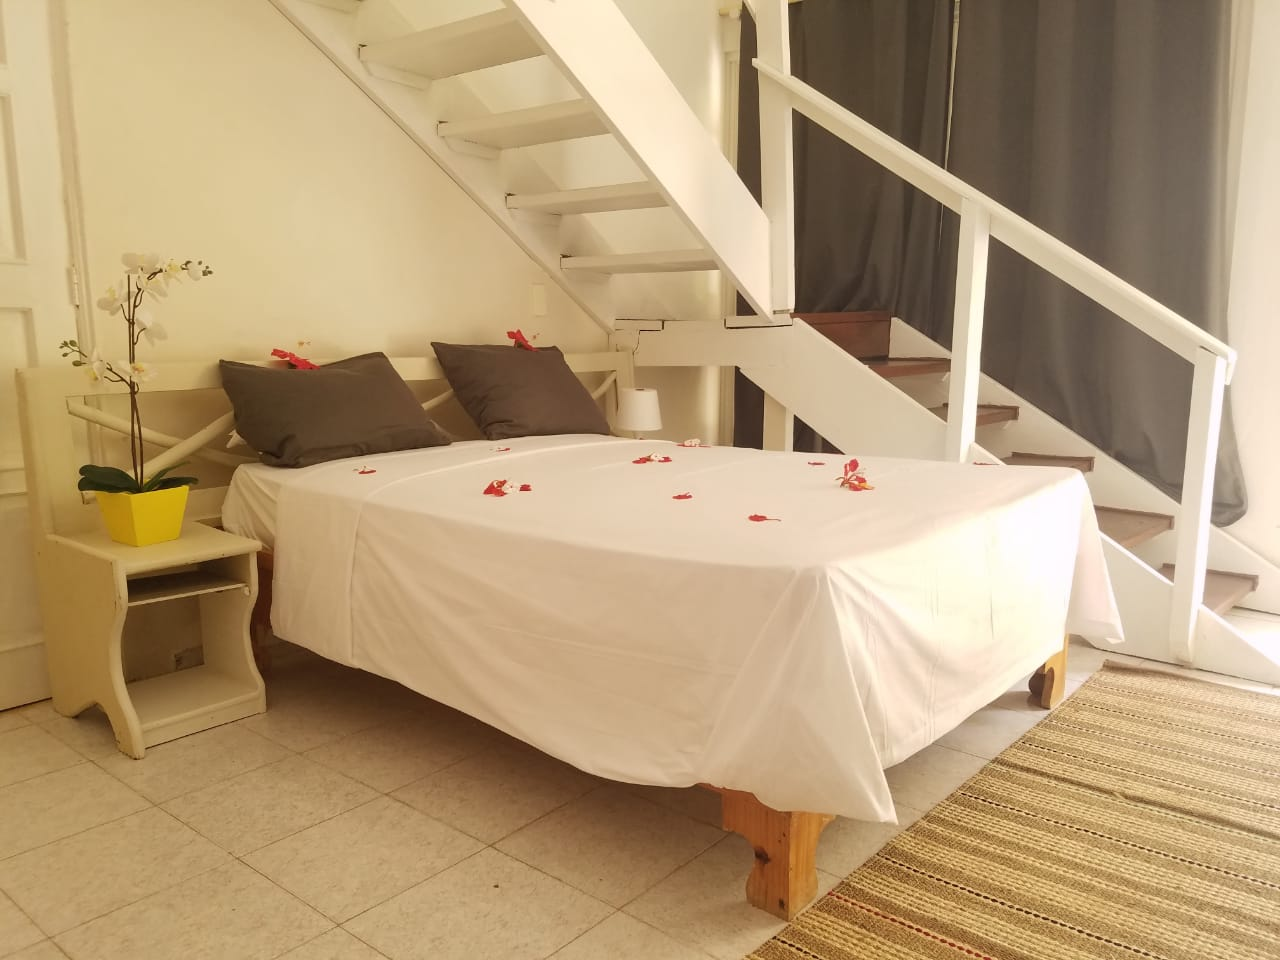 PRIVATE STANDARD or ECONOMY - Perfect for couples or friends, this 2 levels room with 2 double beds that can host up to 4 people features air conditioning or fan, cable TV, showers, toiletries and a small terraceStarting at: US$ 45